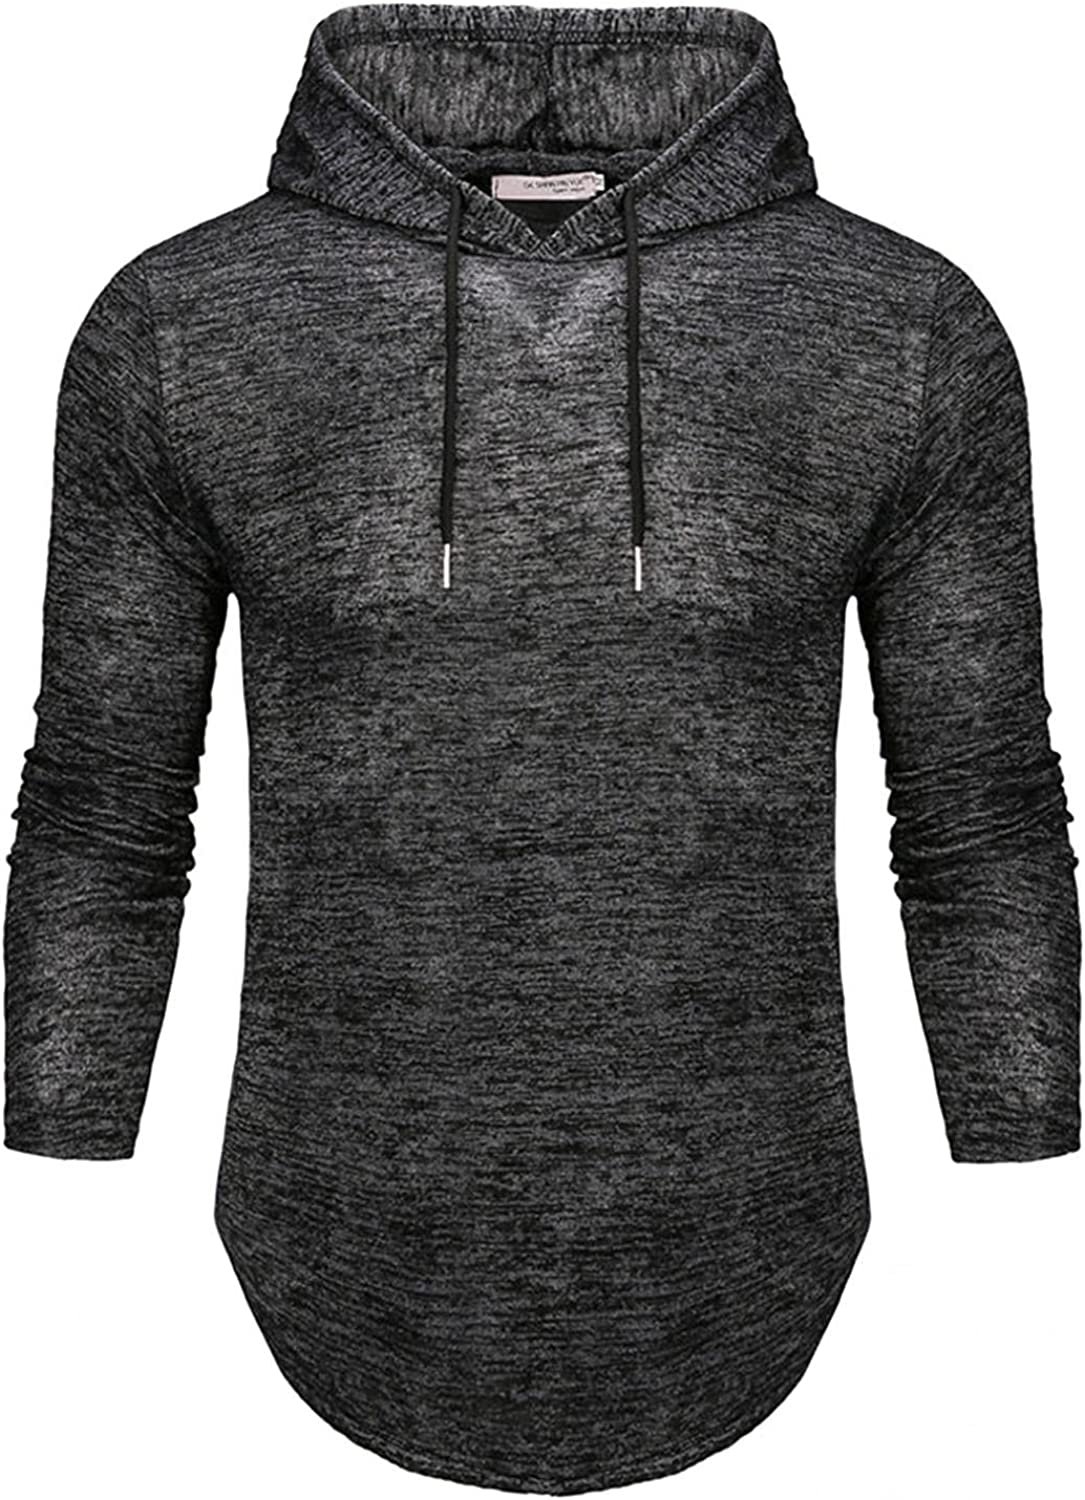 Hoodies for Men Fashion Casual Pullover Slim Solid Warm Shirts Quick Dry Long Sleeve Blend Fleece Mens Hoodies